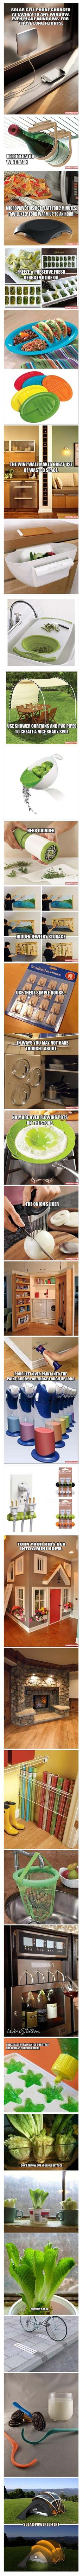 Amazing ideas Life hacks Tips and tricks Great products Choses Cool, Things To Know, Good Things, Awesome Things, Life Hacks, Take My Money, Tips & Tricks, Cool Inventions, Good To Know